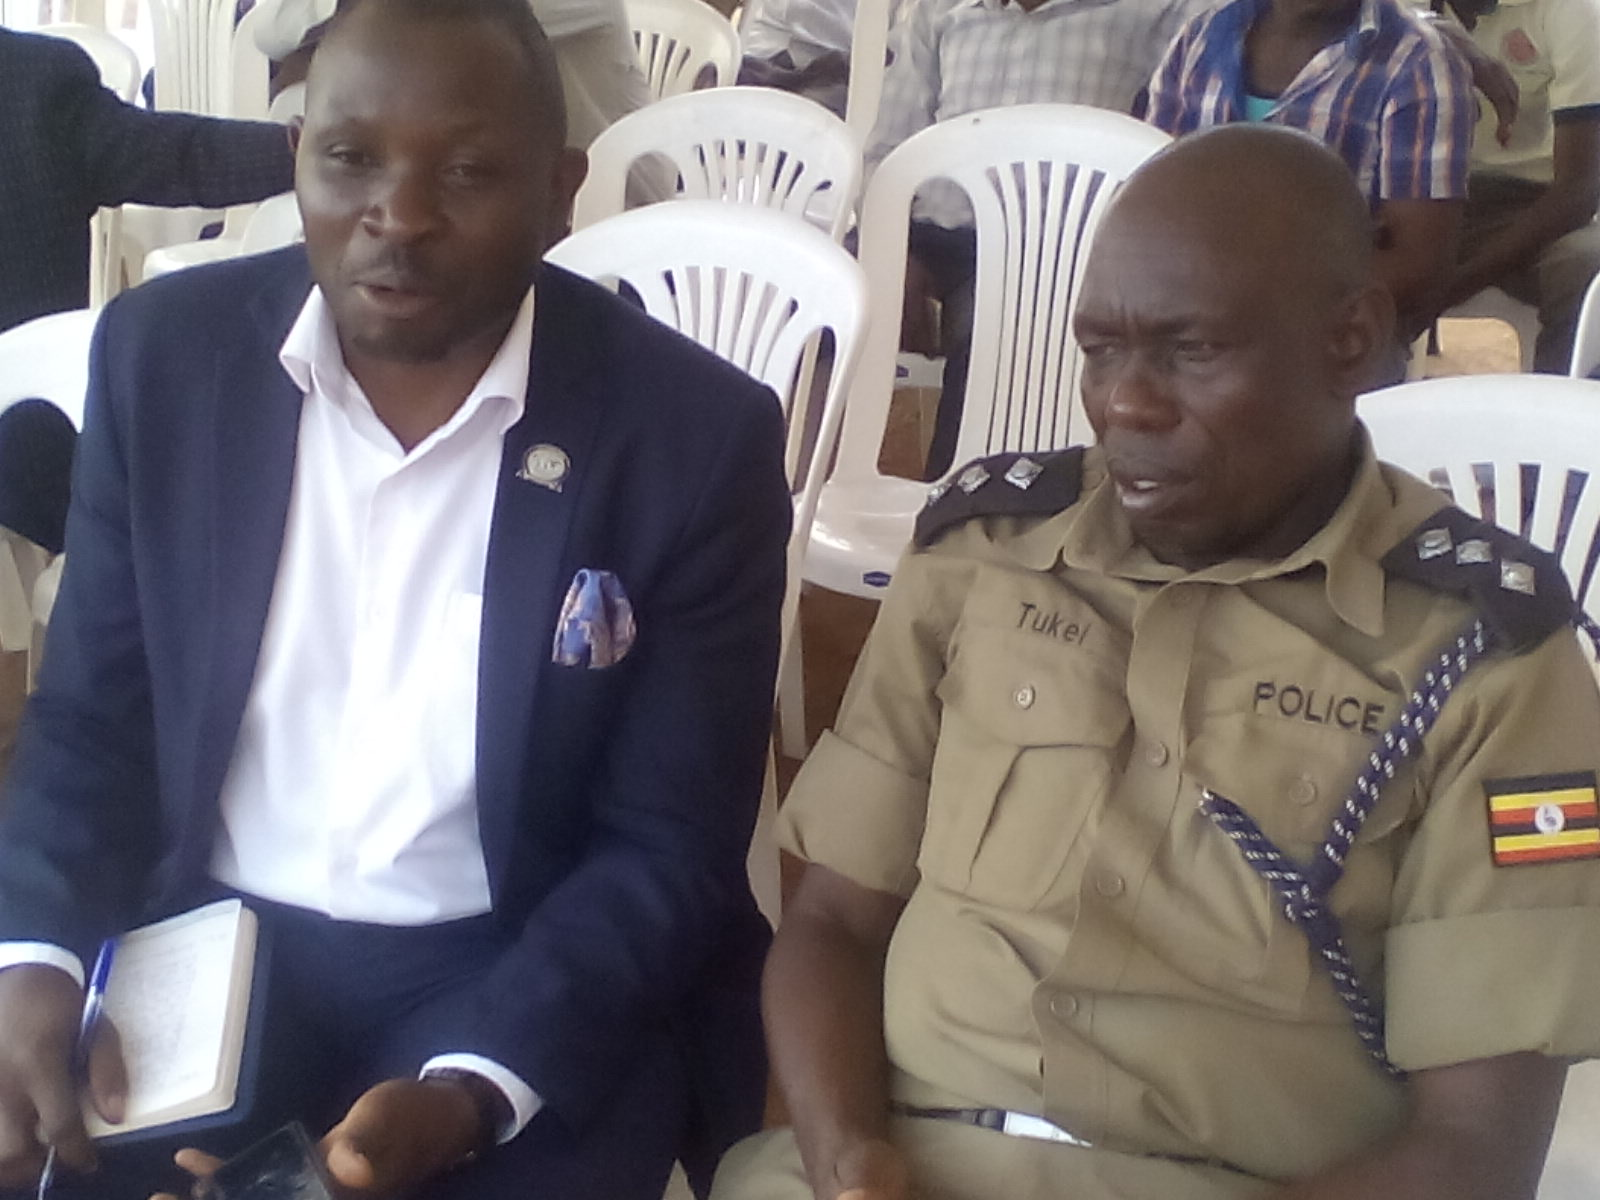 Sempala Robert from HRNJ is flanked by Elgon region Police spokesman John Robert Tukei.